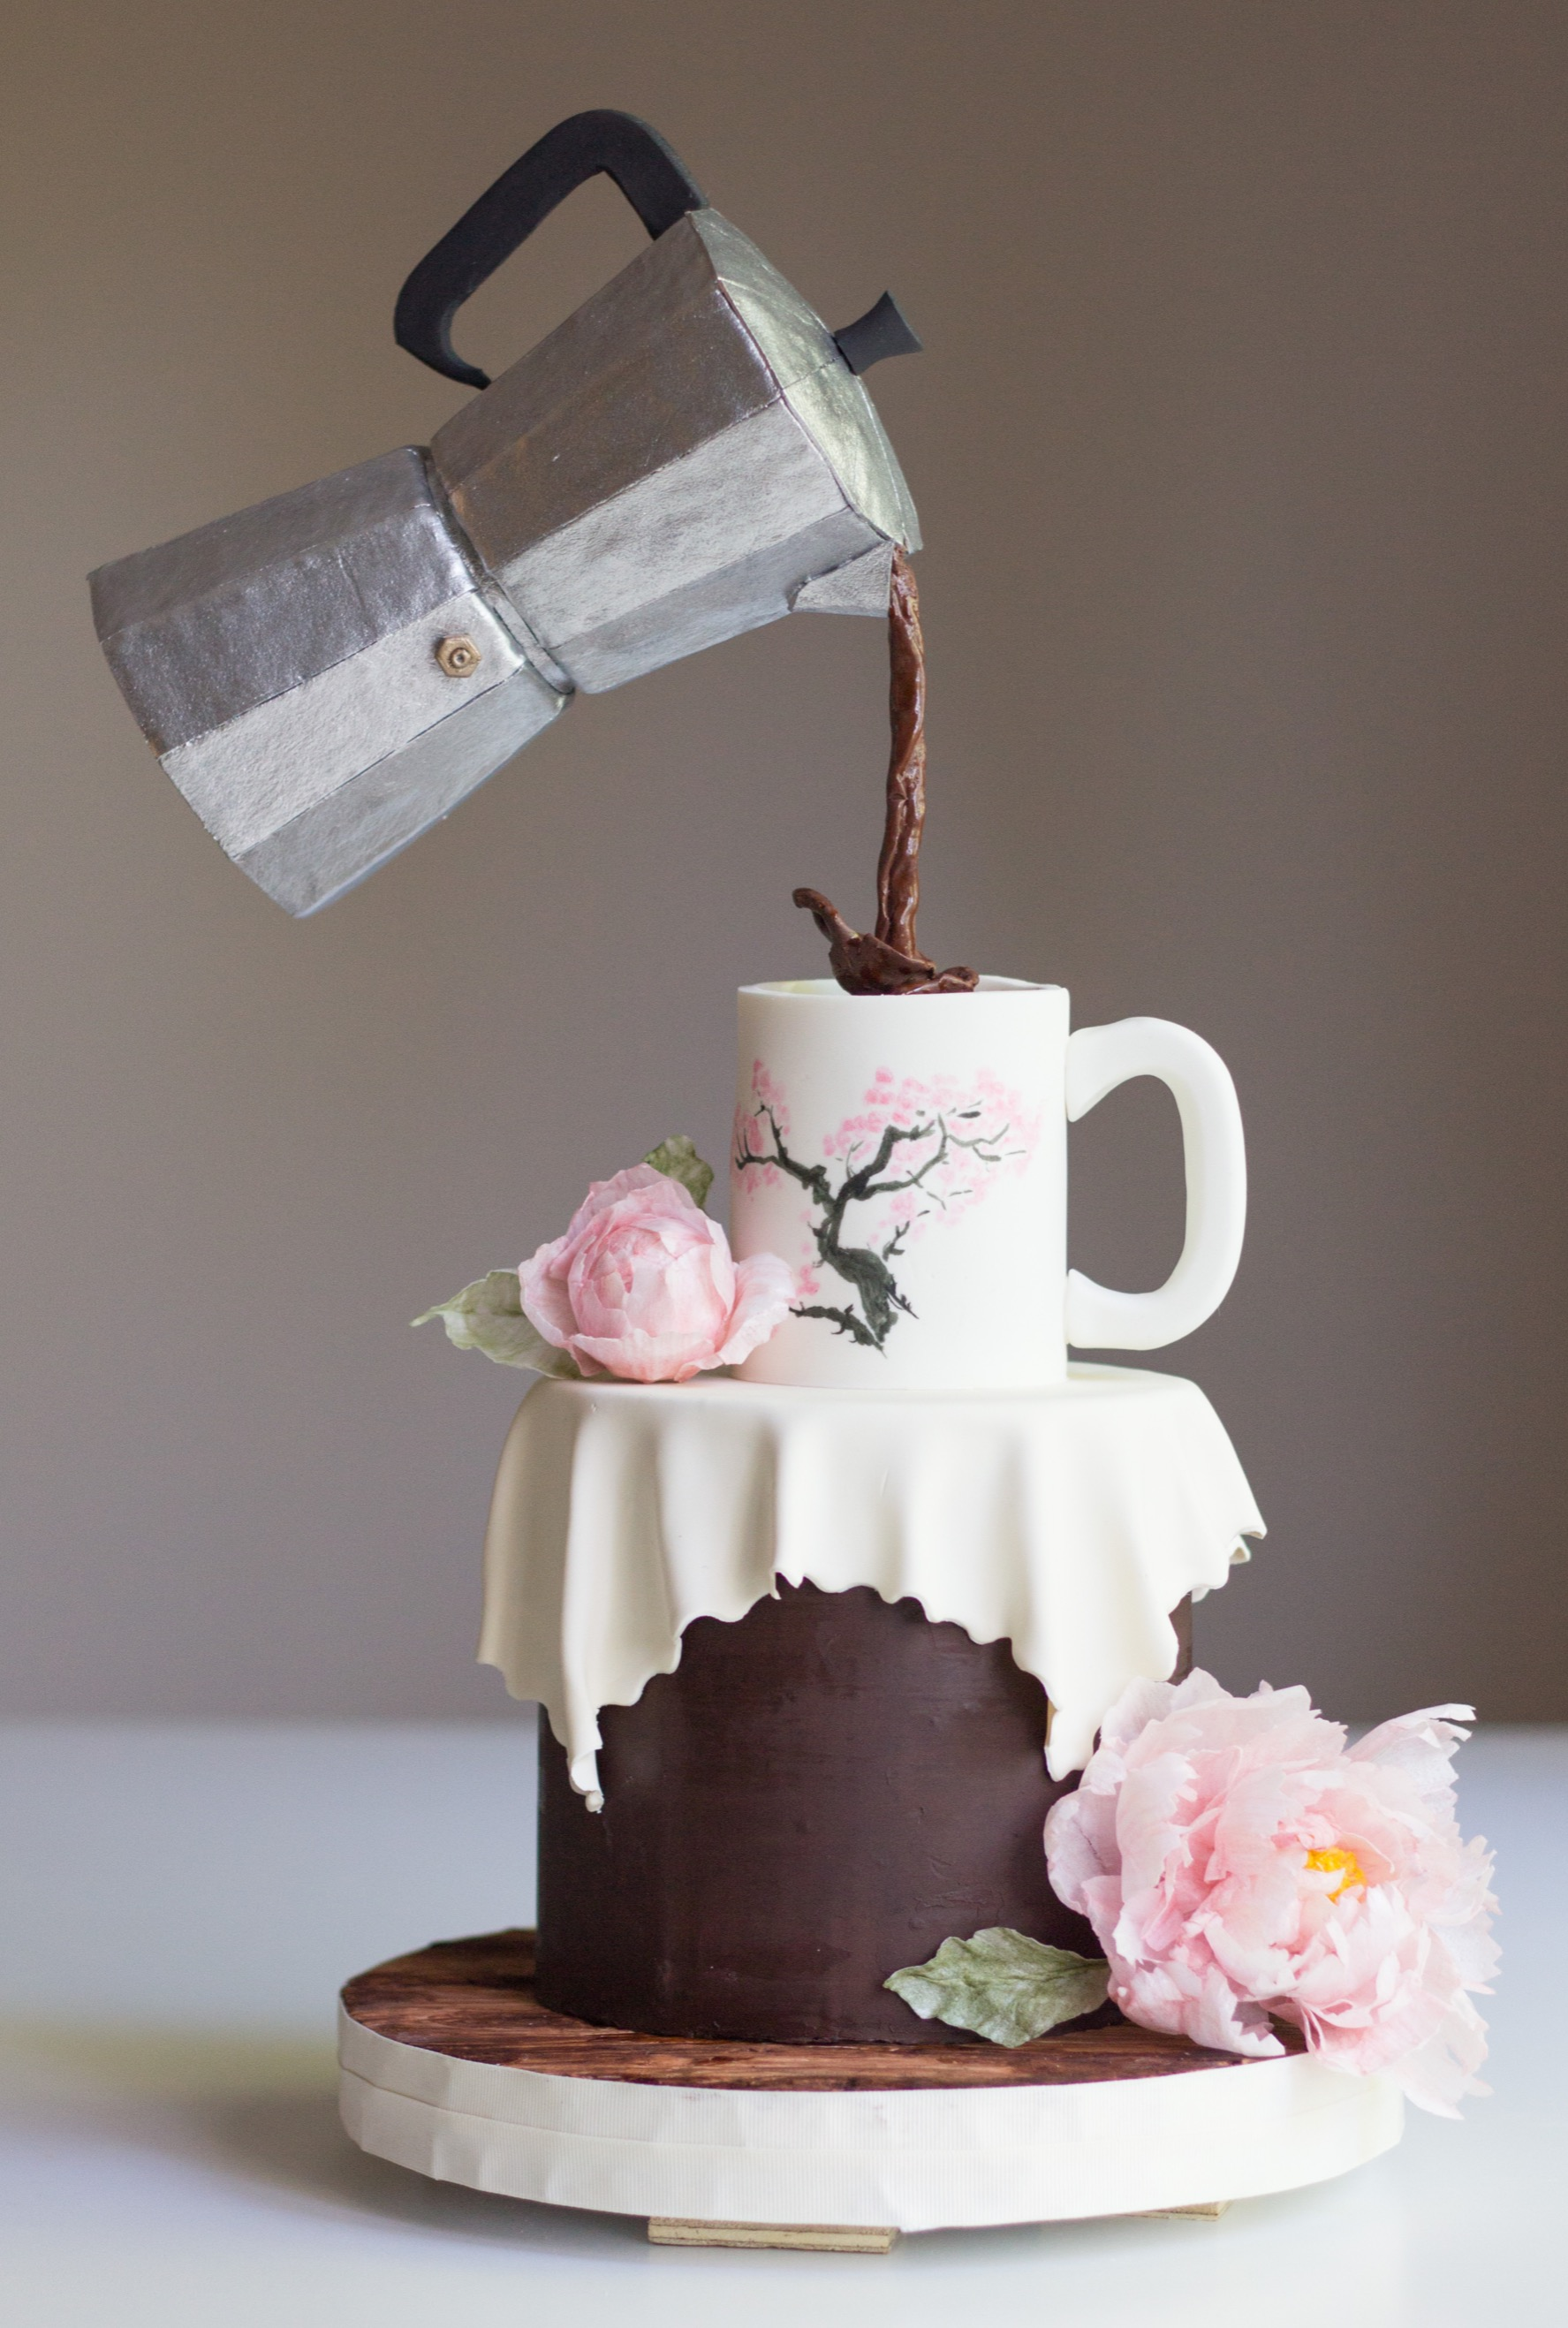 Gravity defying Coffee Pouring Cake